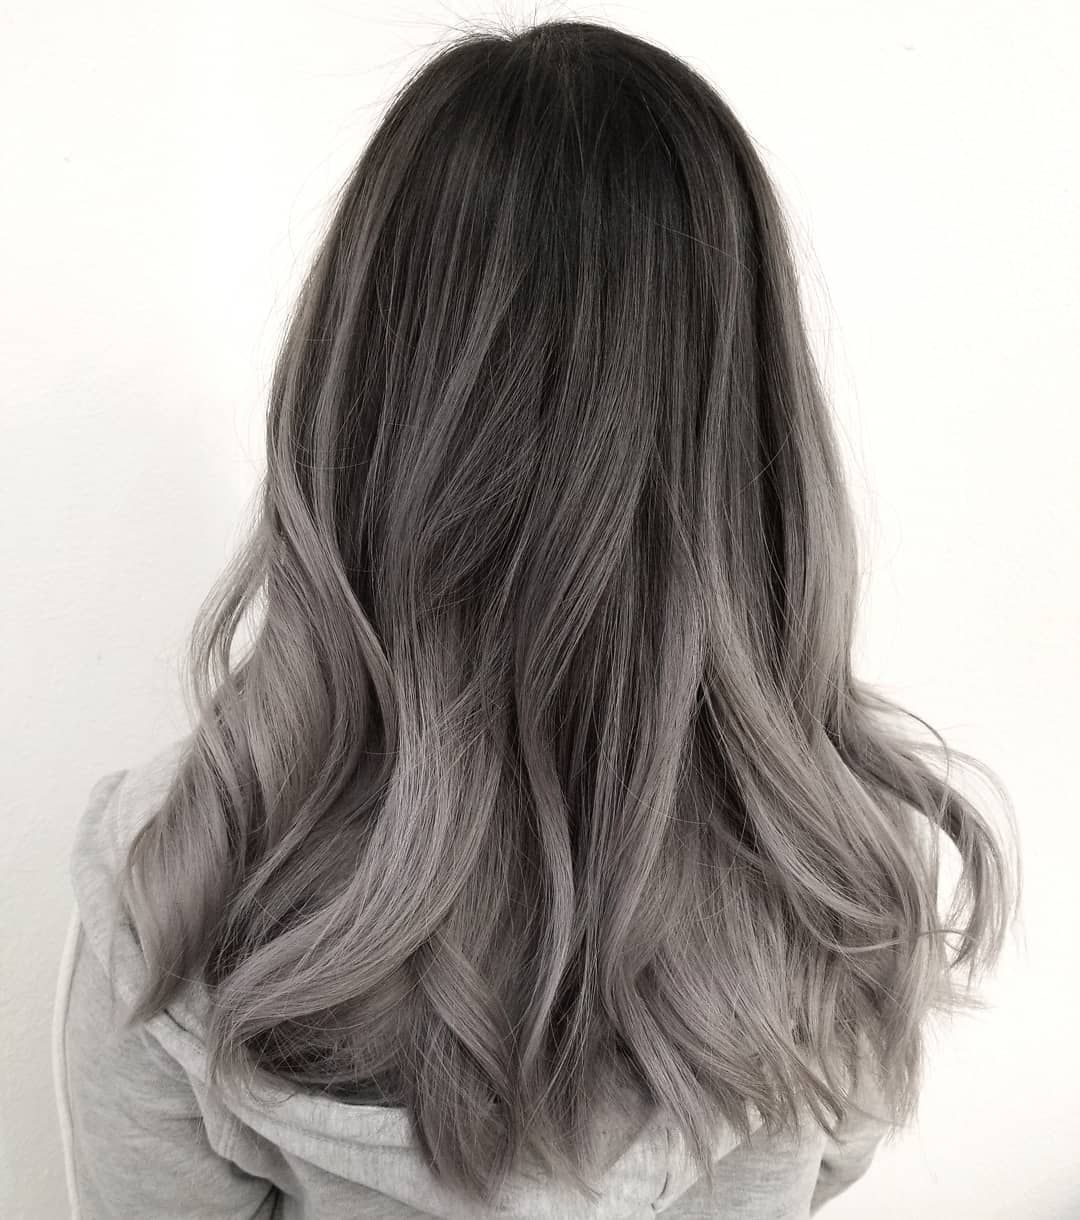 Sammi Wang Sanoo Instagramissa When You Ask For Silver U Get Silver Fanola Di 2020 Warna Rambut Ombre Rambut Warna Warni Rambut Warna Silver